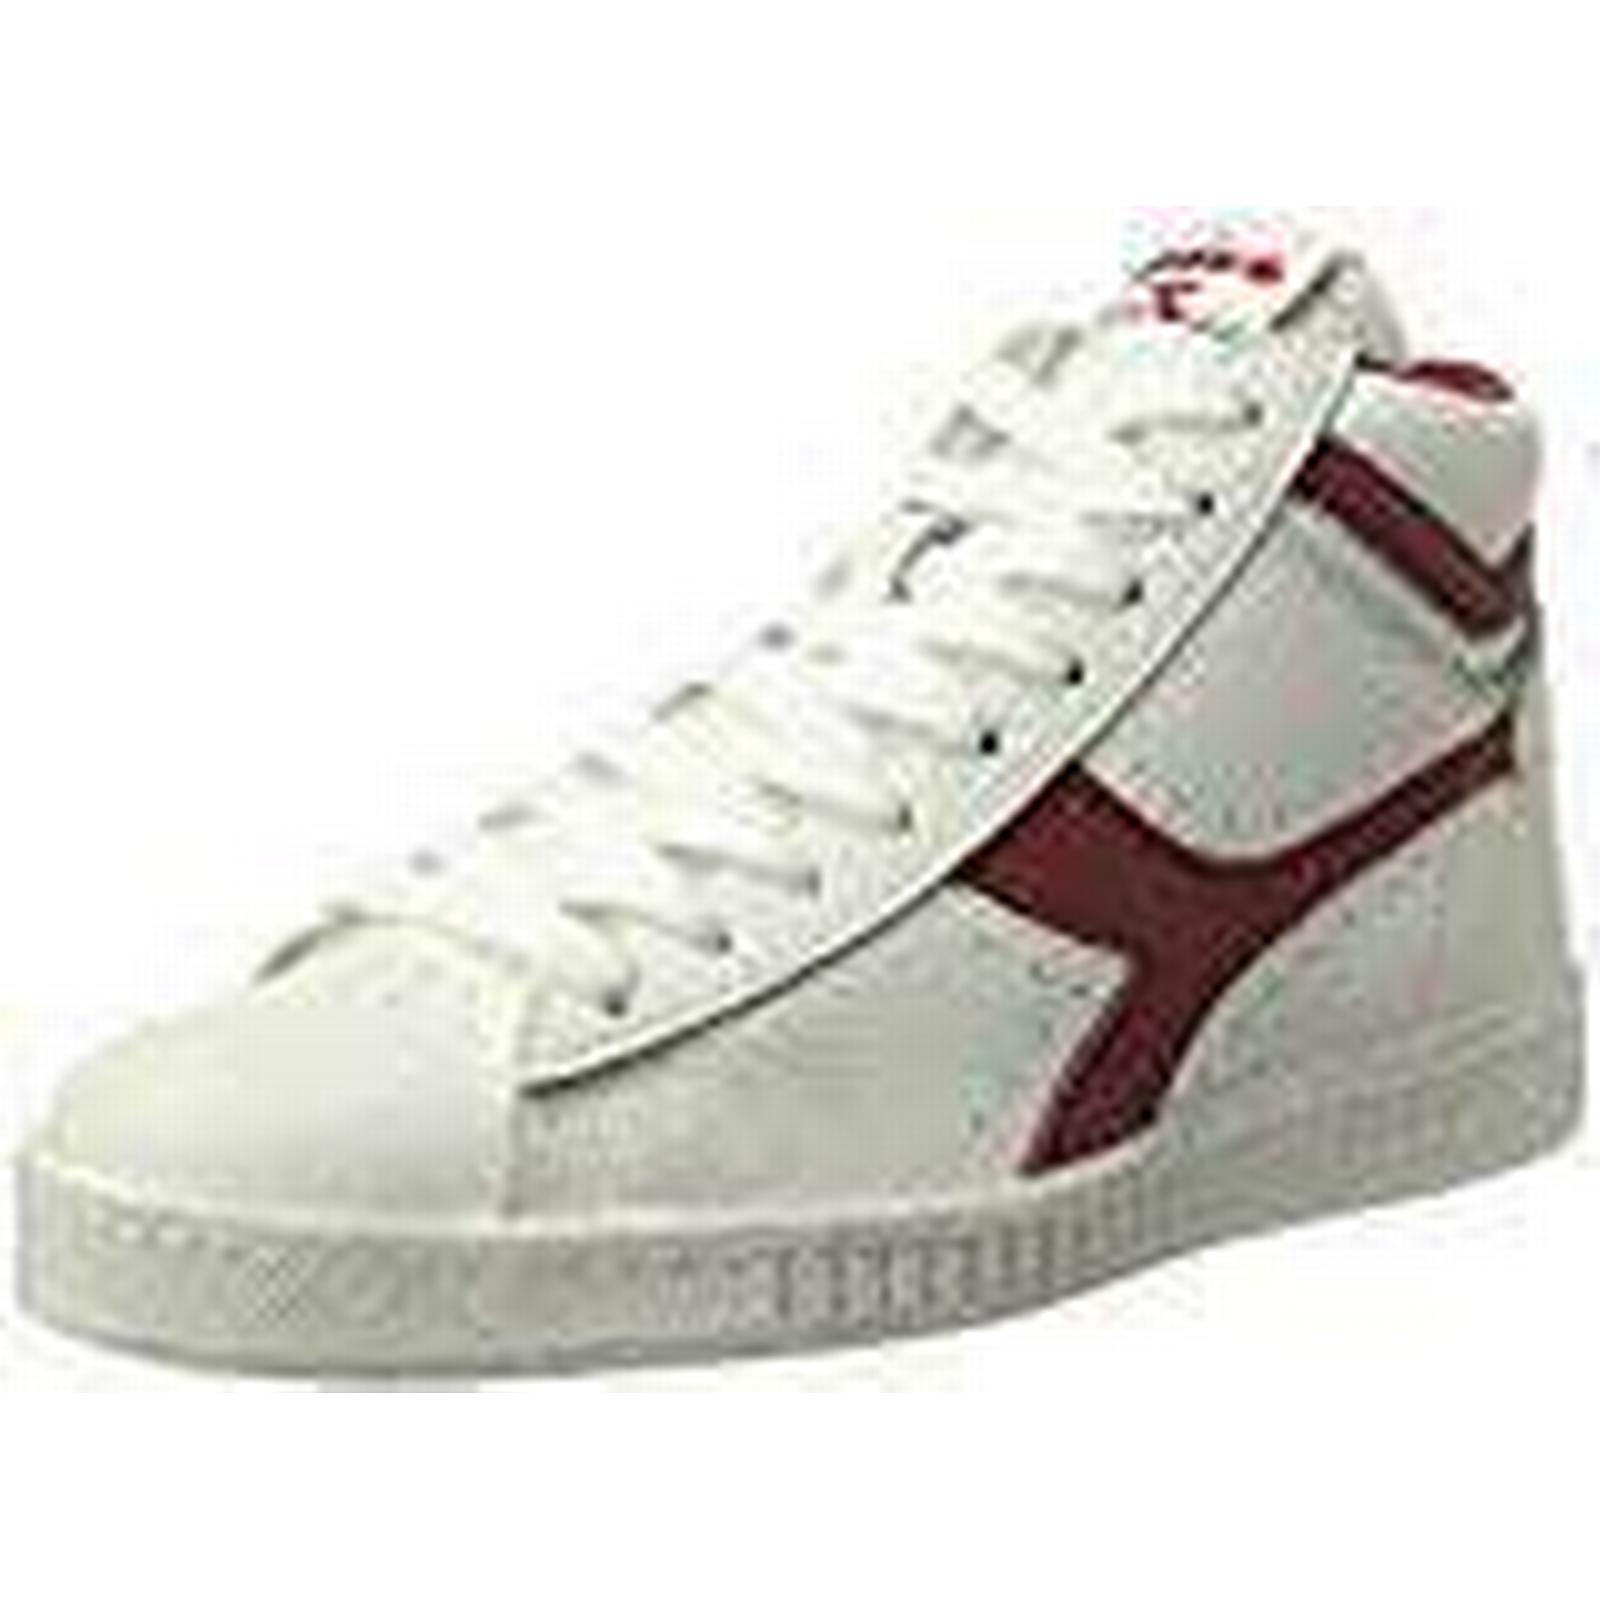 Diadora Men's Game L Low Waxed Men's White Tennis Shoes / in Size 46 EU / Shoes 11.5 UK White 0a8e05